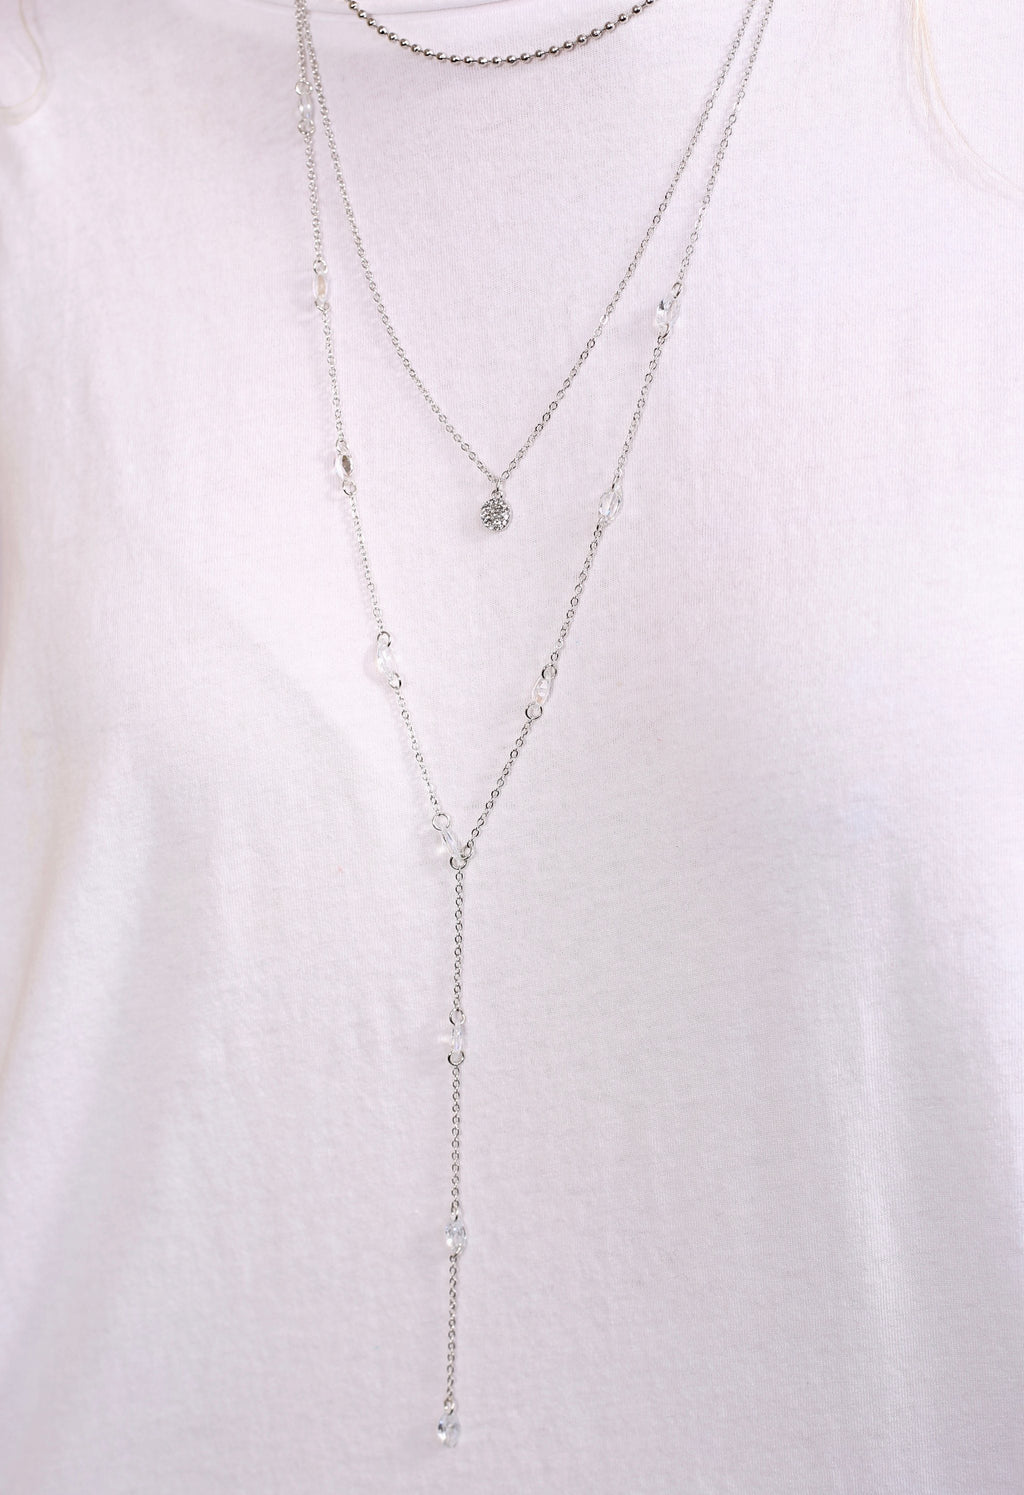 Adelaide Silver Layered Y Drop Necklace - Caroline Hill